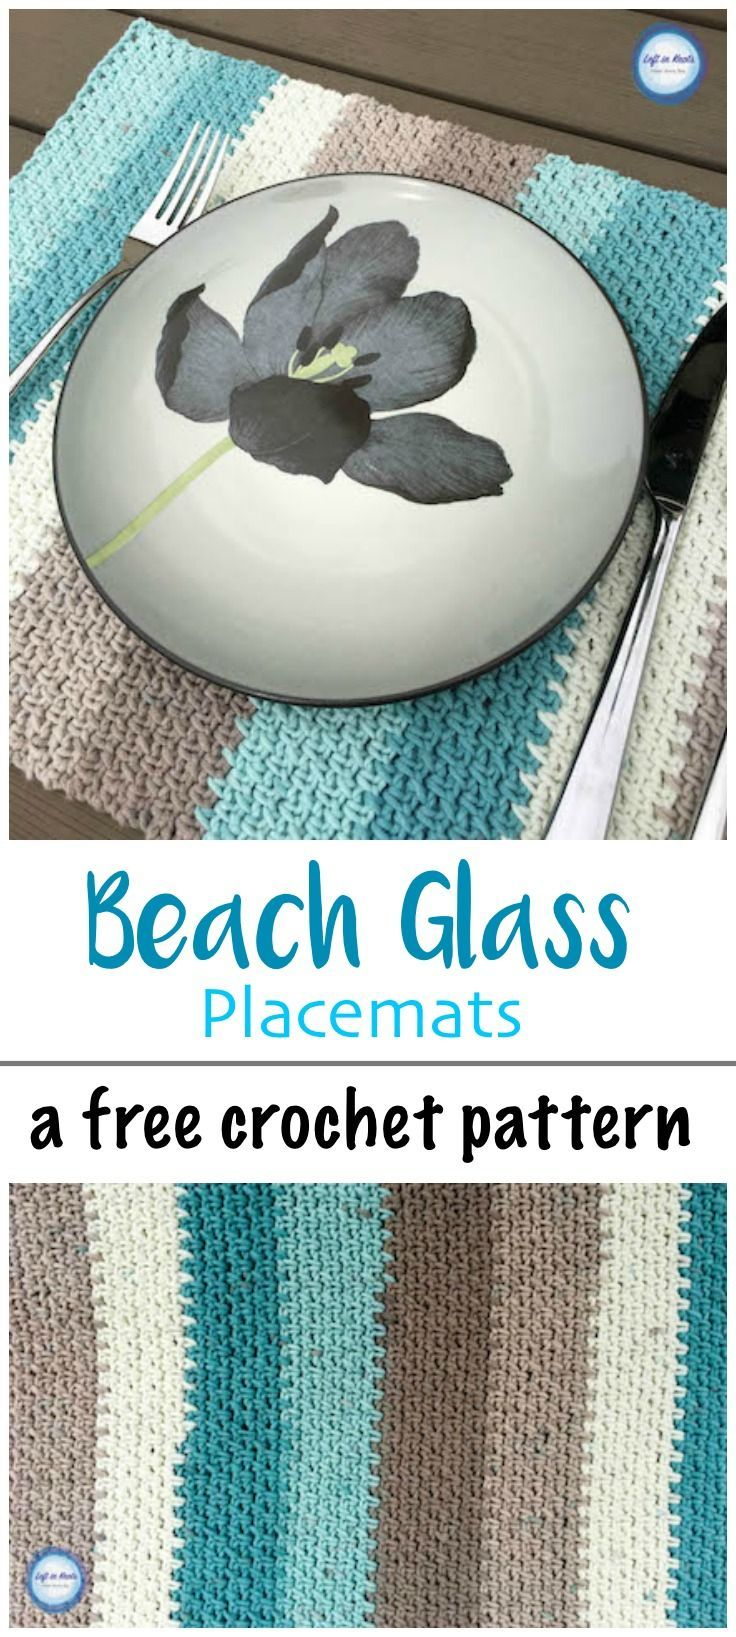 350 best crochet placemat coasters images on pinterest crochet beach glass placemats easy crochet patternscrochet bankloansurffo Gallery